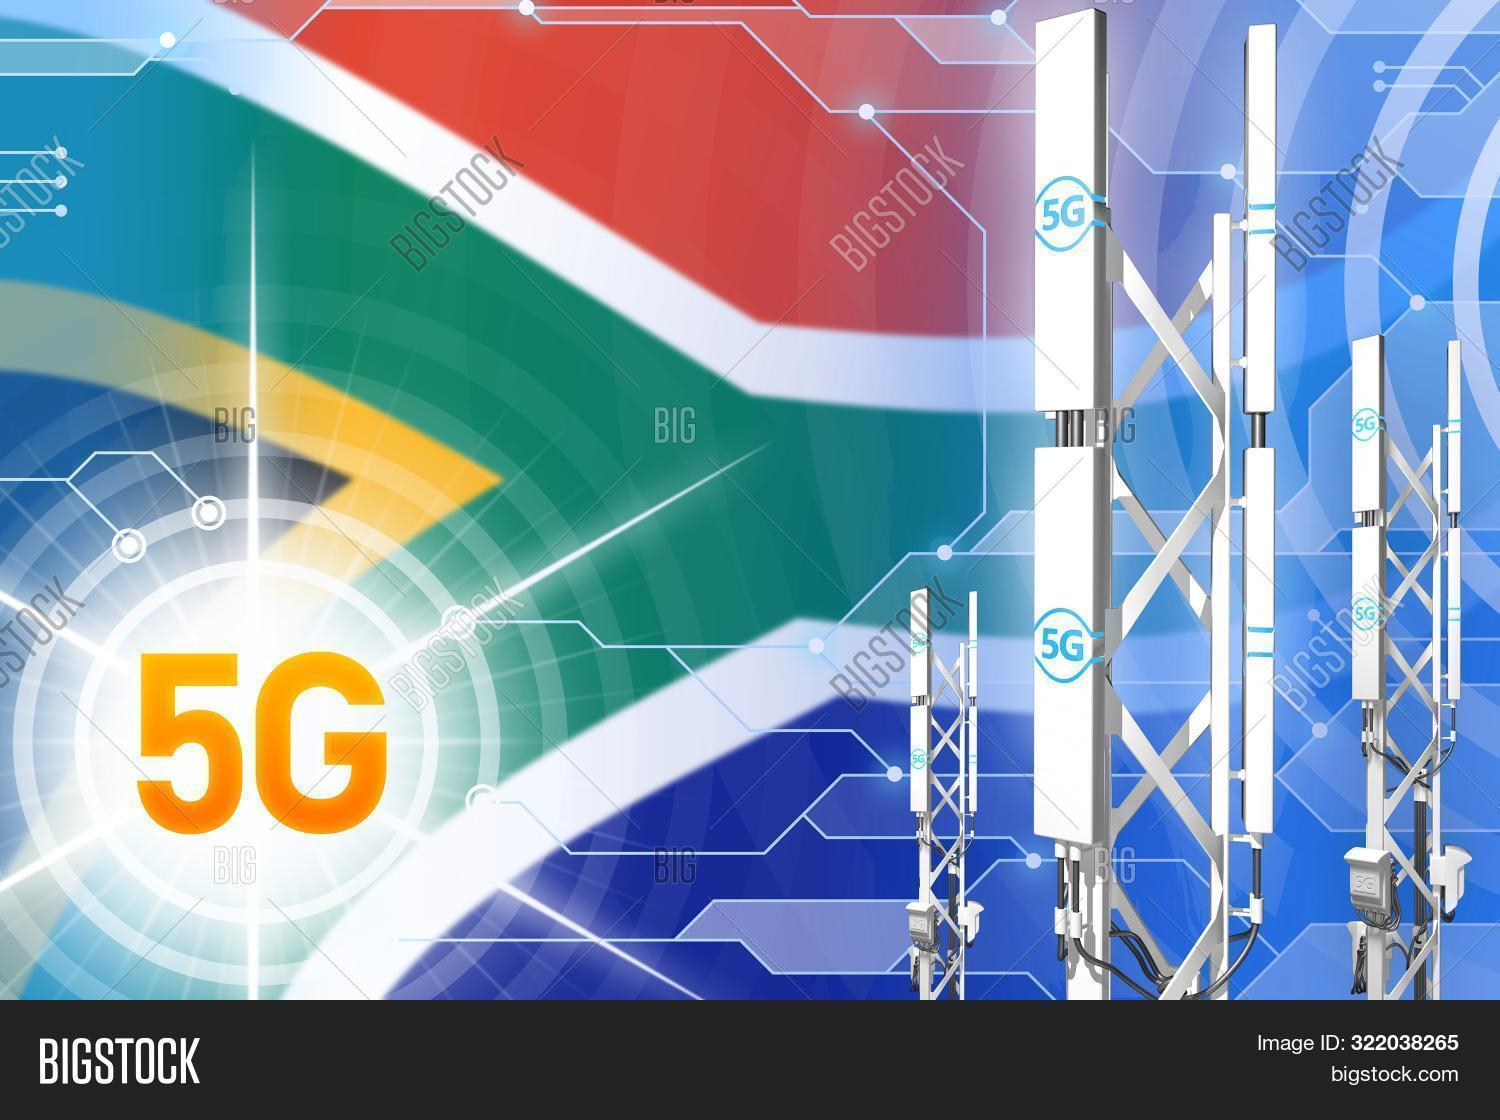 3d,4g,5g,African,africa,antenna,base,cell,cellular,communication,connection,equipment,flag,illustration,industrial,industry,lte,mast,metal,mobile,network,phone,radio,rendering,signal,south,station,technology,telecommunication,telephone,tower,transmission,transmitter,wireless